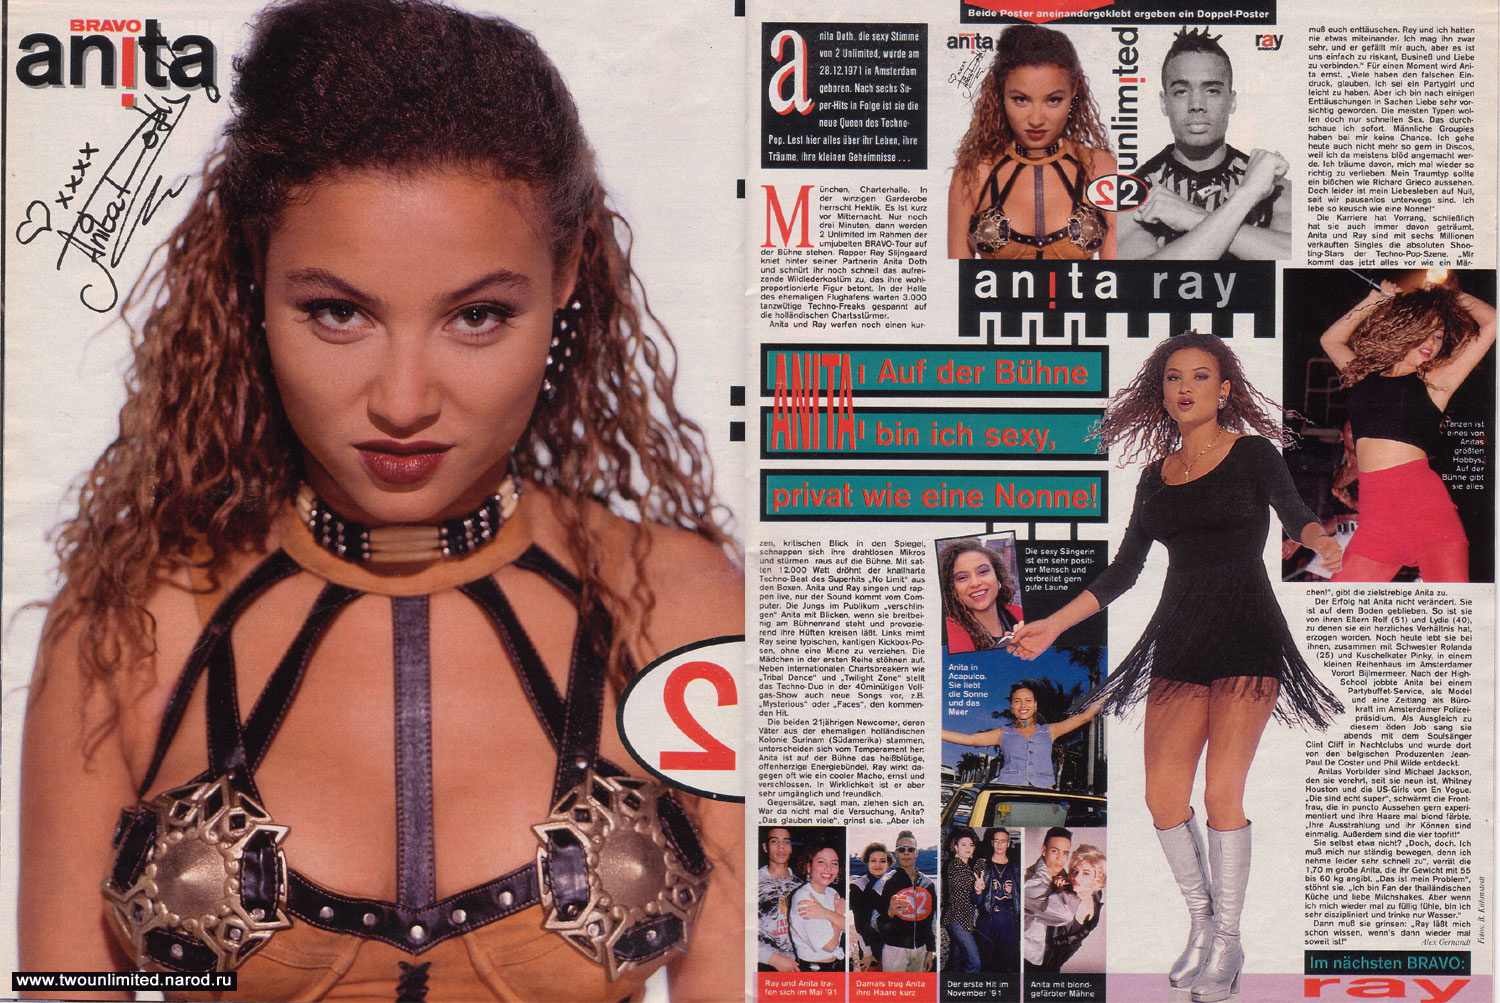 Anita Doth 2 Unlimited